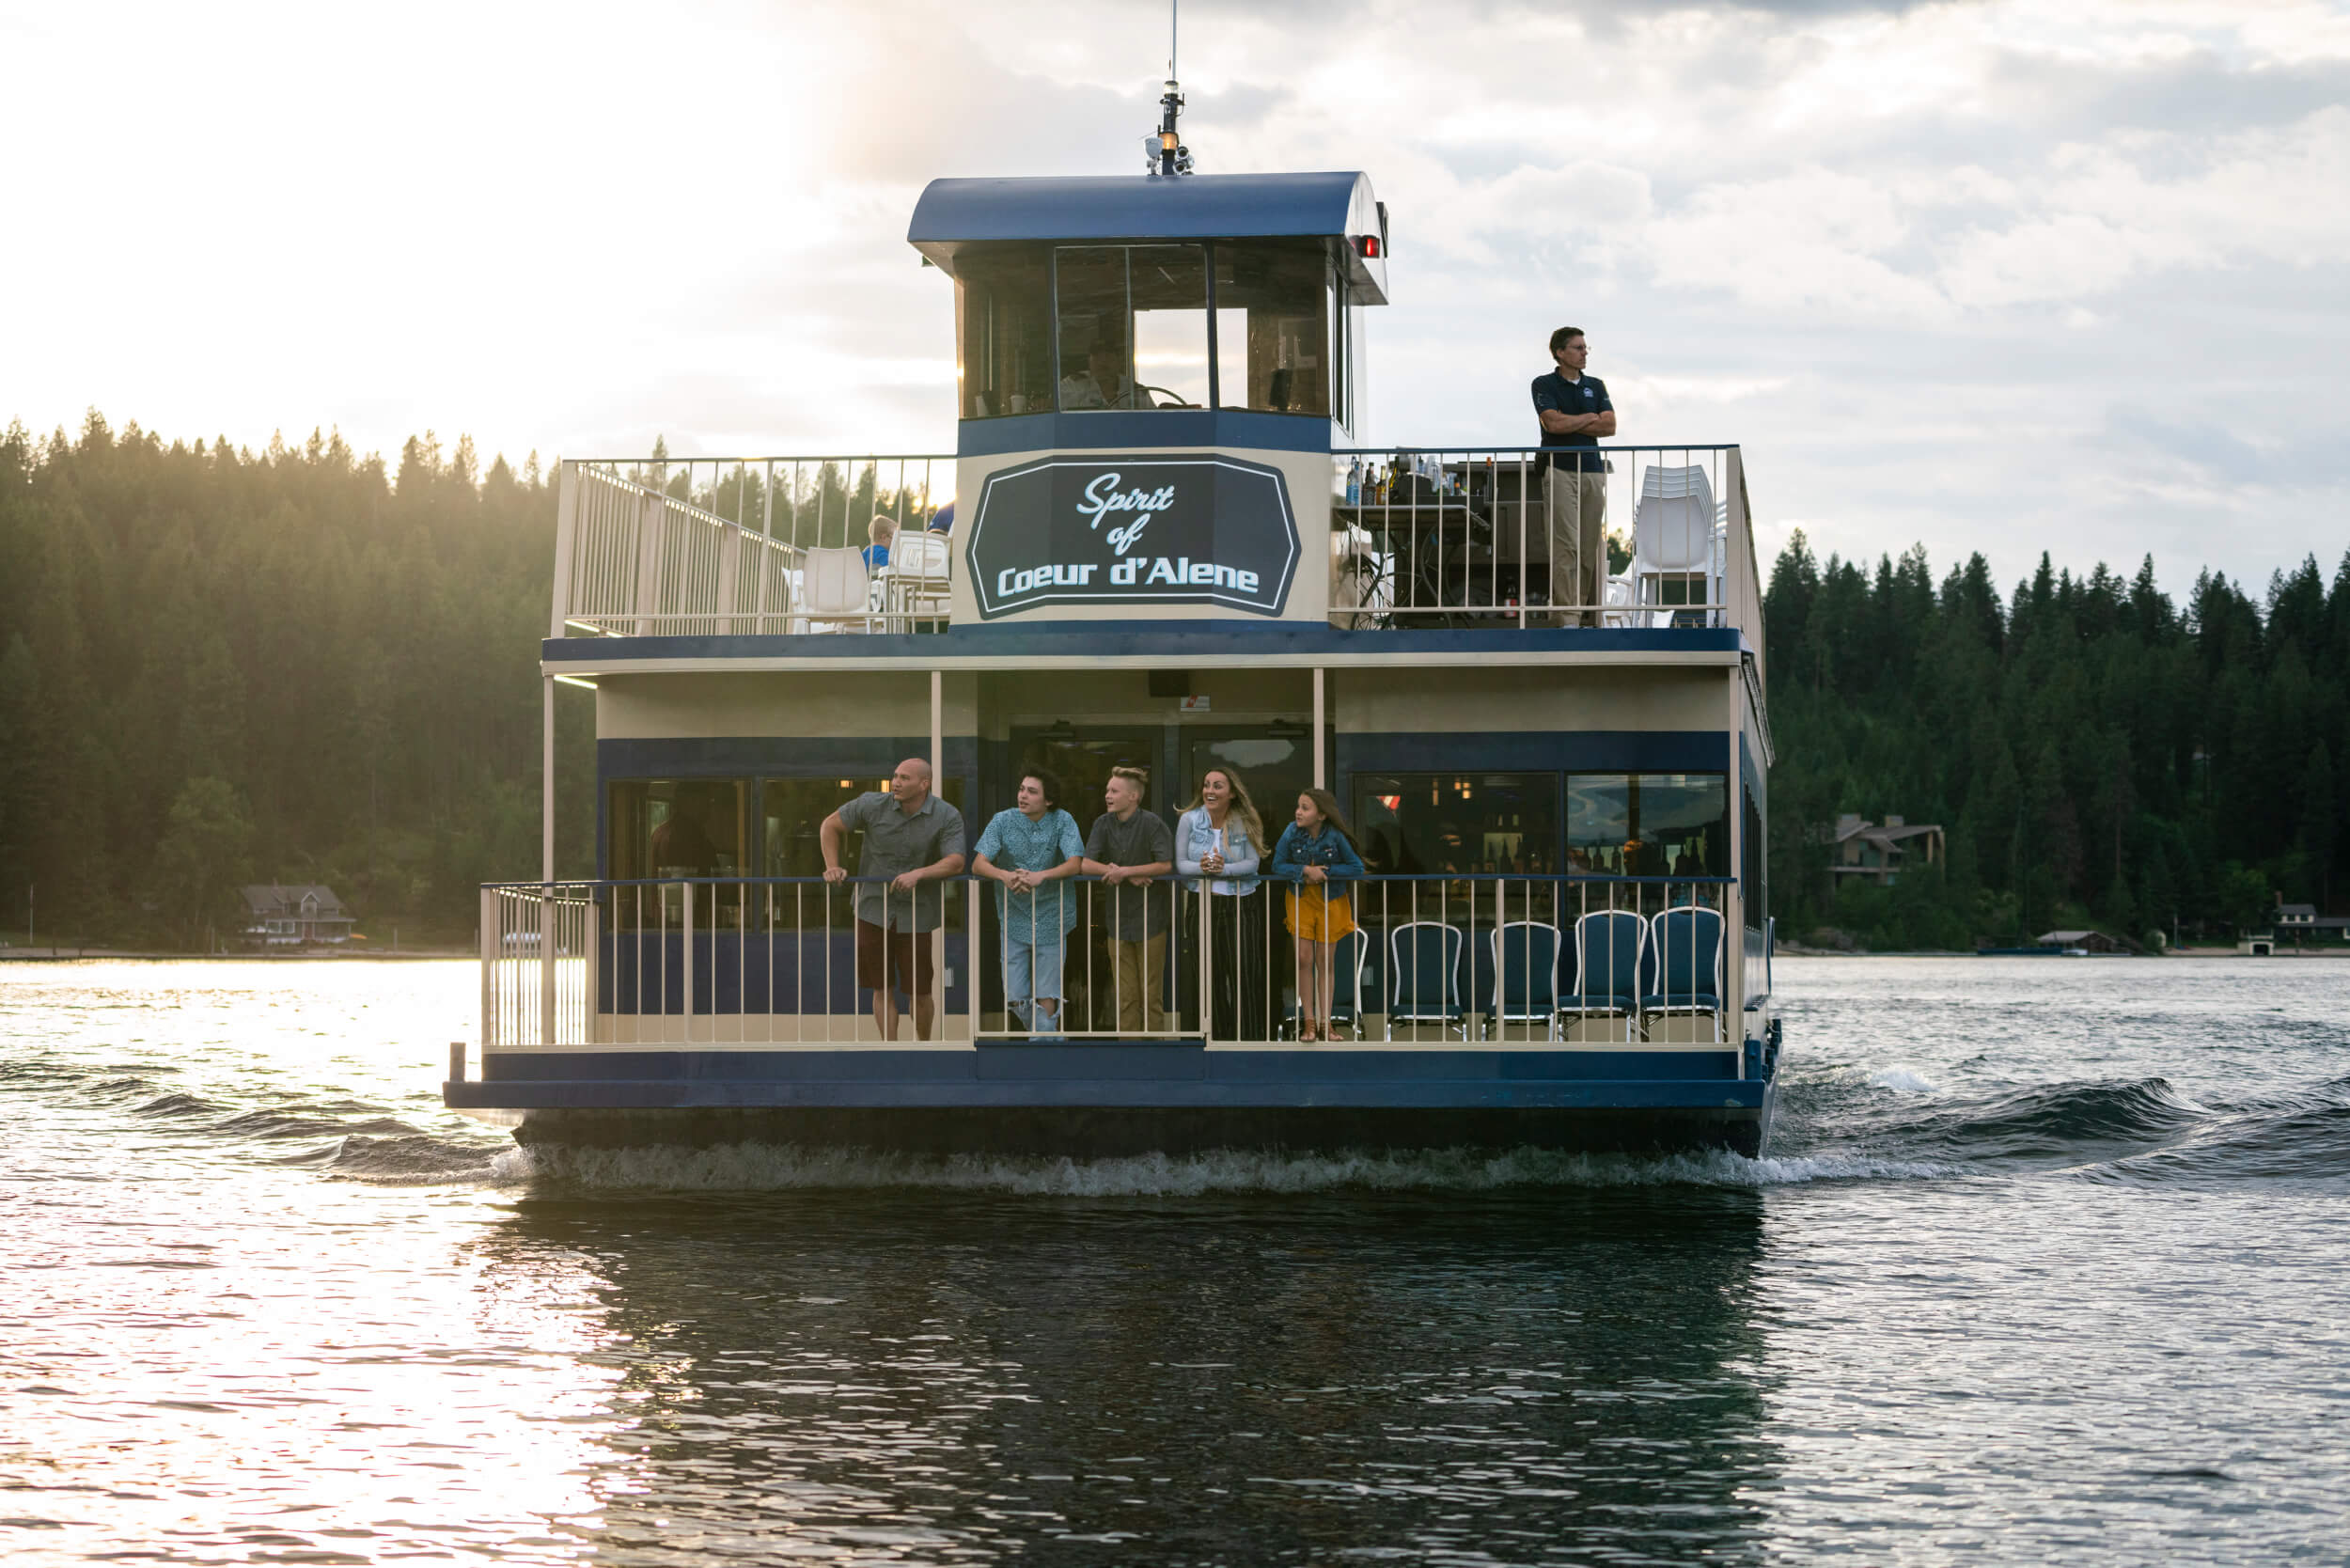 five people leaning on the rails of a Coeur d'Alene Cruise Ship on Lake Coeur d'Alene in Idaho